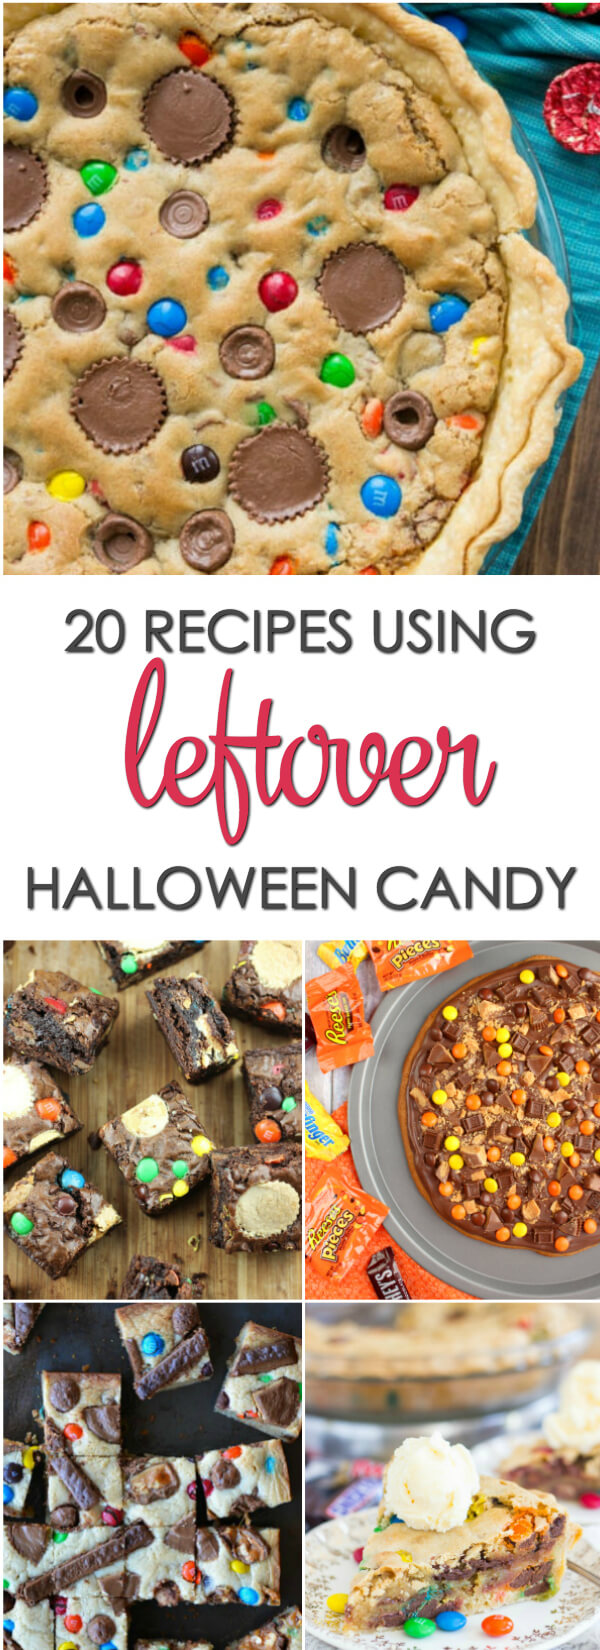 20 of the best recipes using leftover Halloween candy